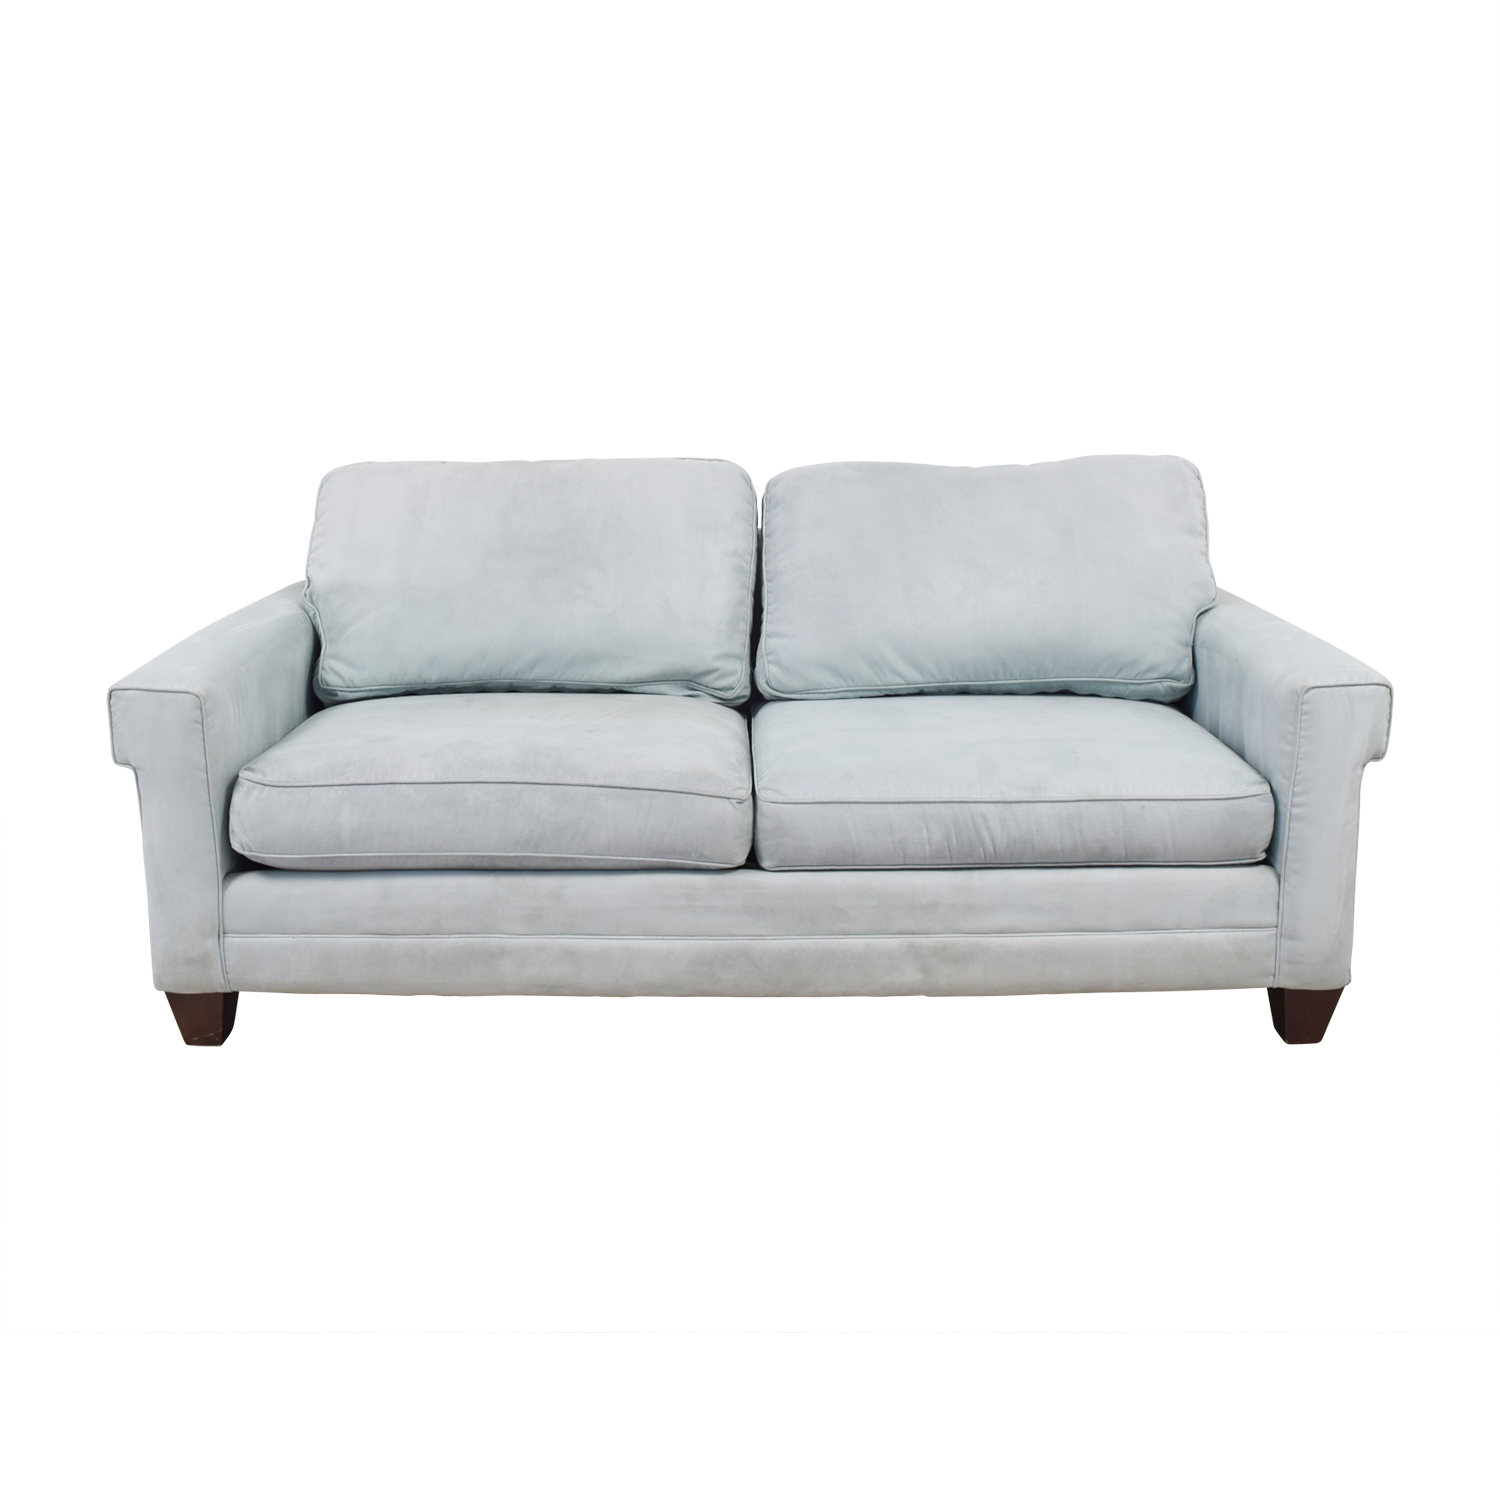 Buy Bassett Bassett Light Blue Micro Fiber Two Cushion Couch Online